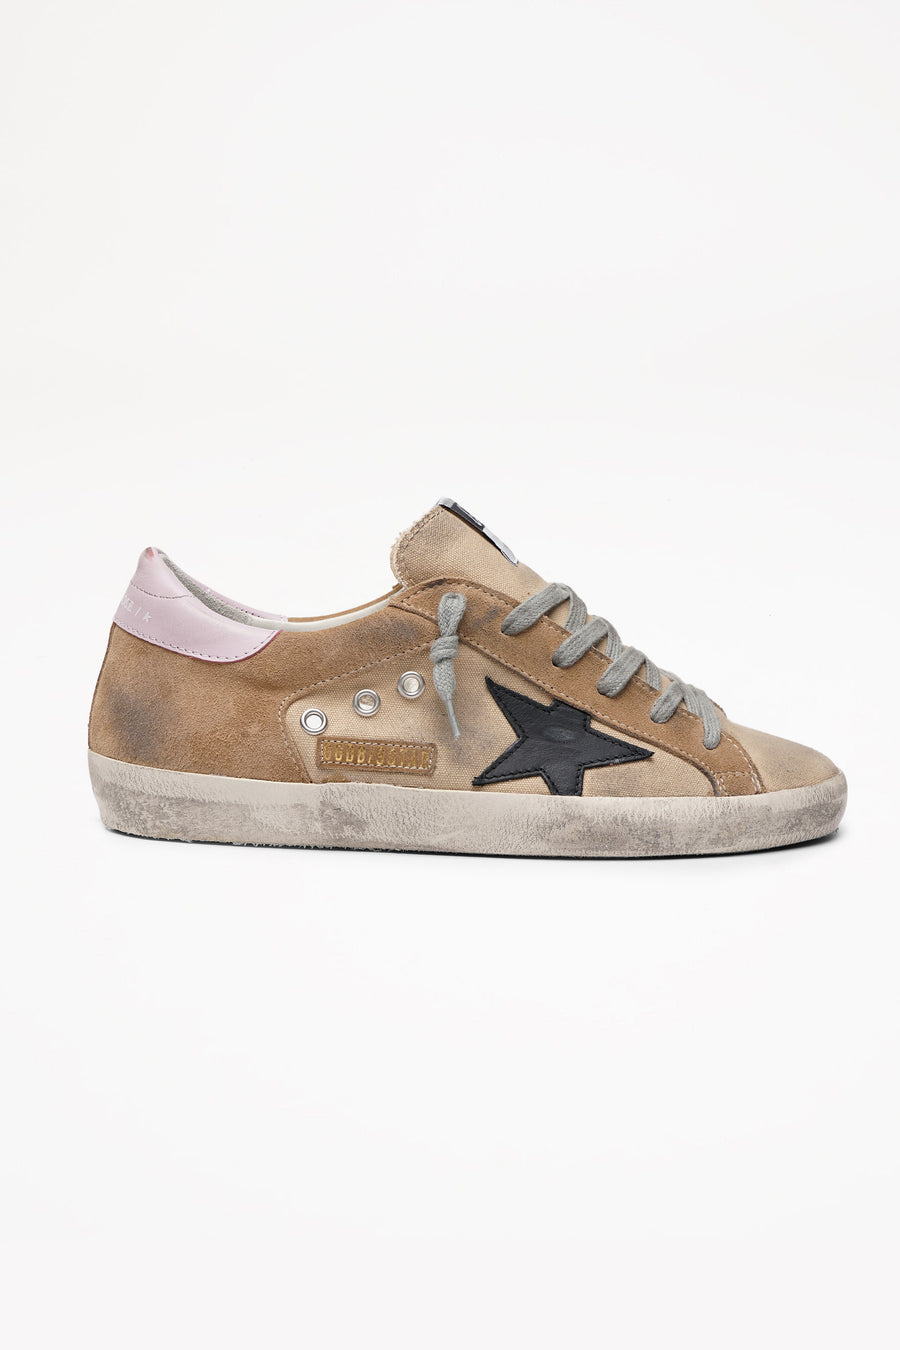 Superstar - Beige Canvas Black Star - Pavilion